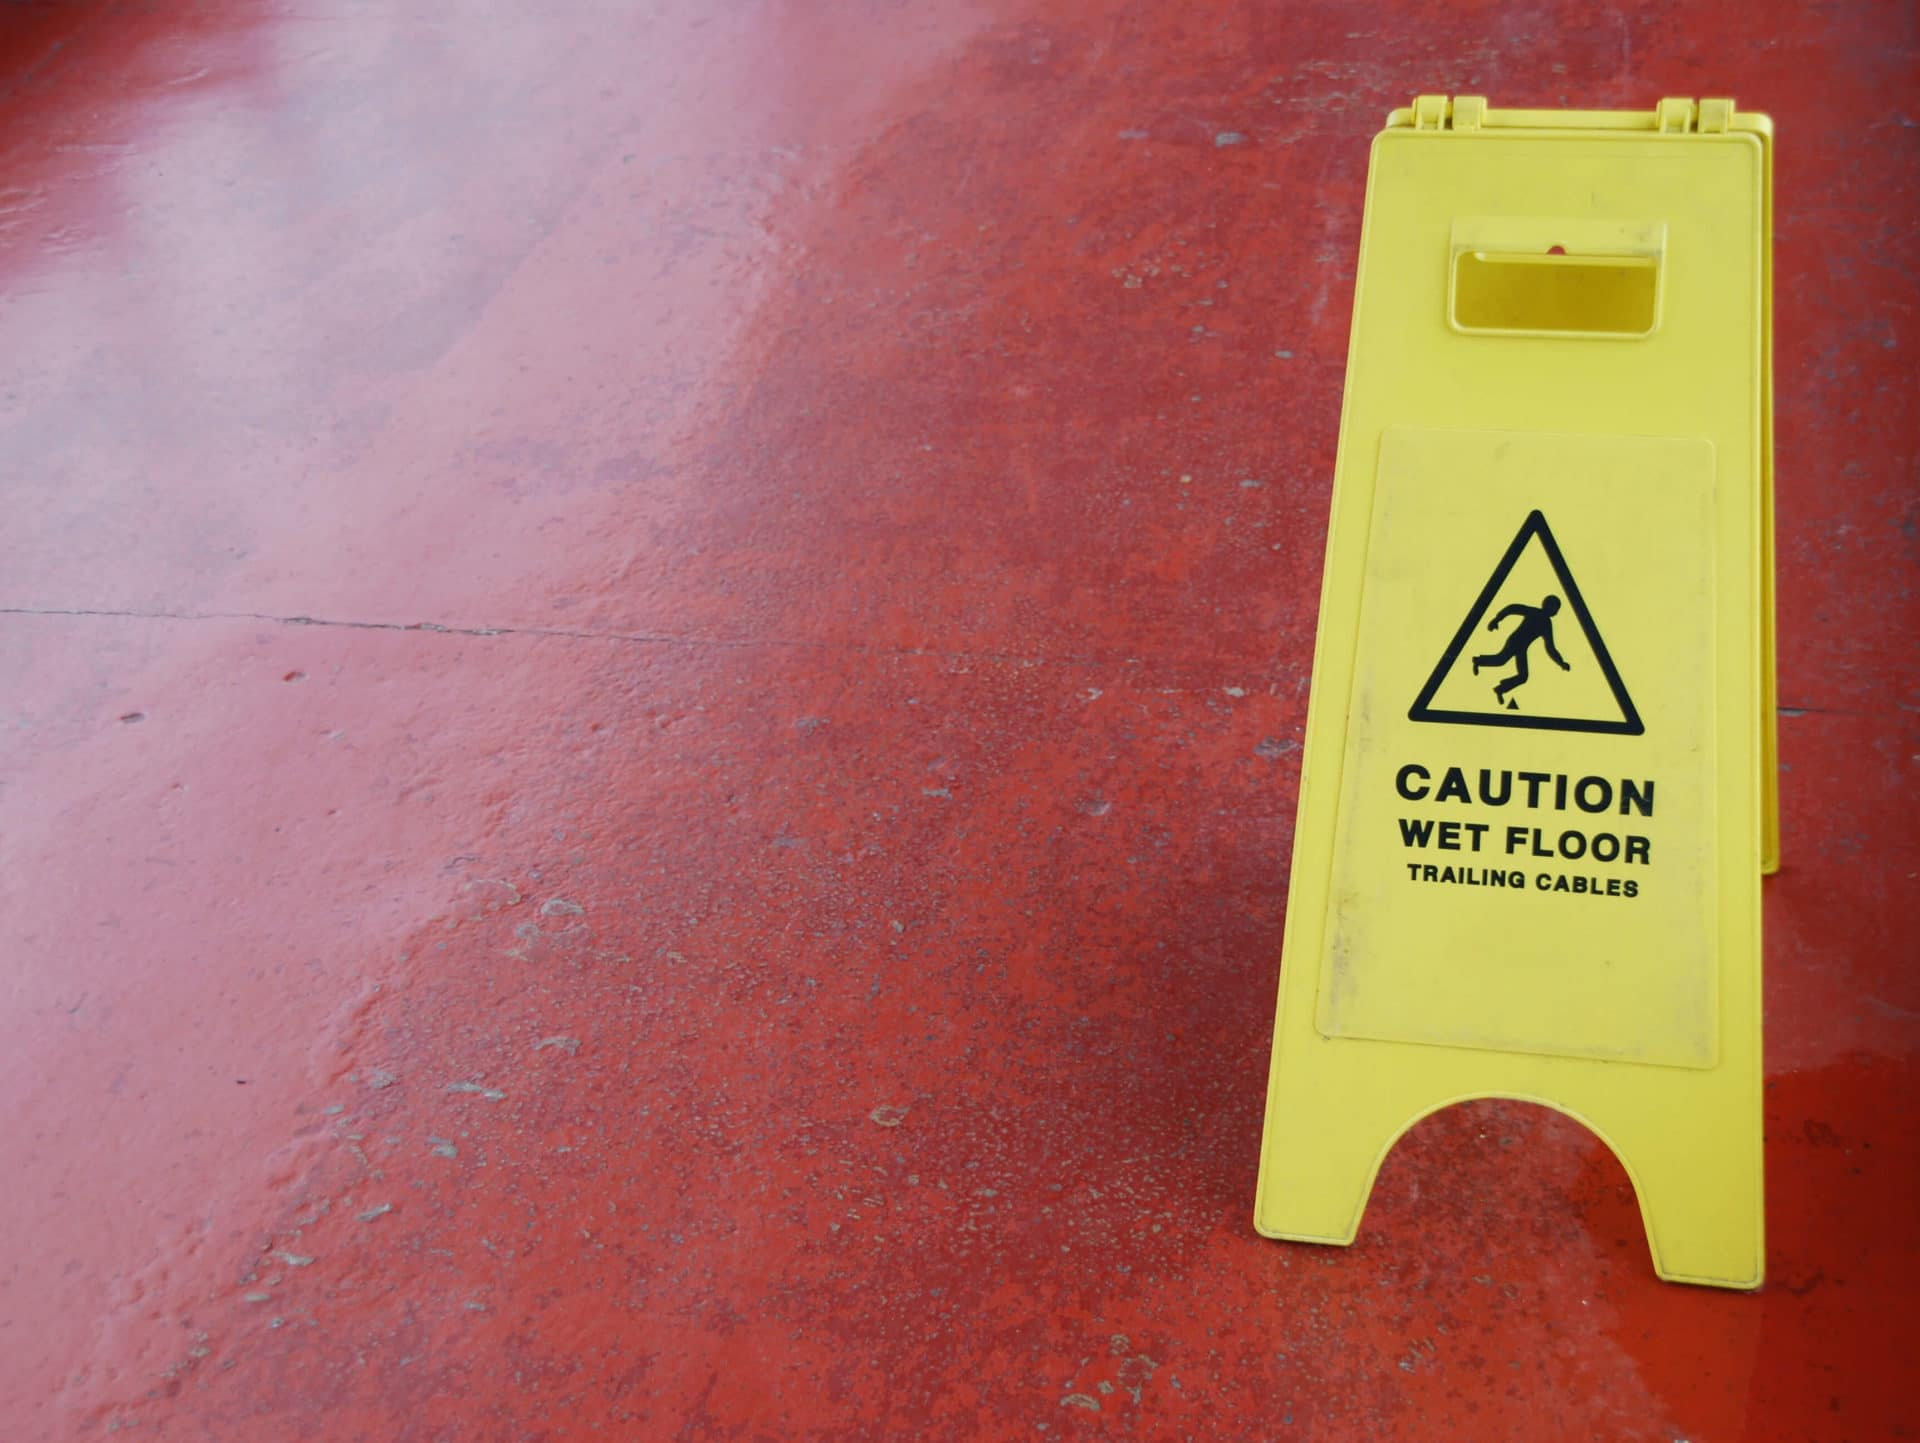 Slip and Fall Accidents are No Laughing Matter